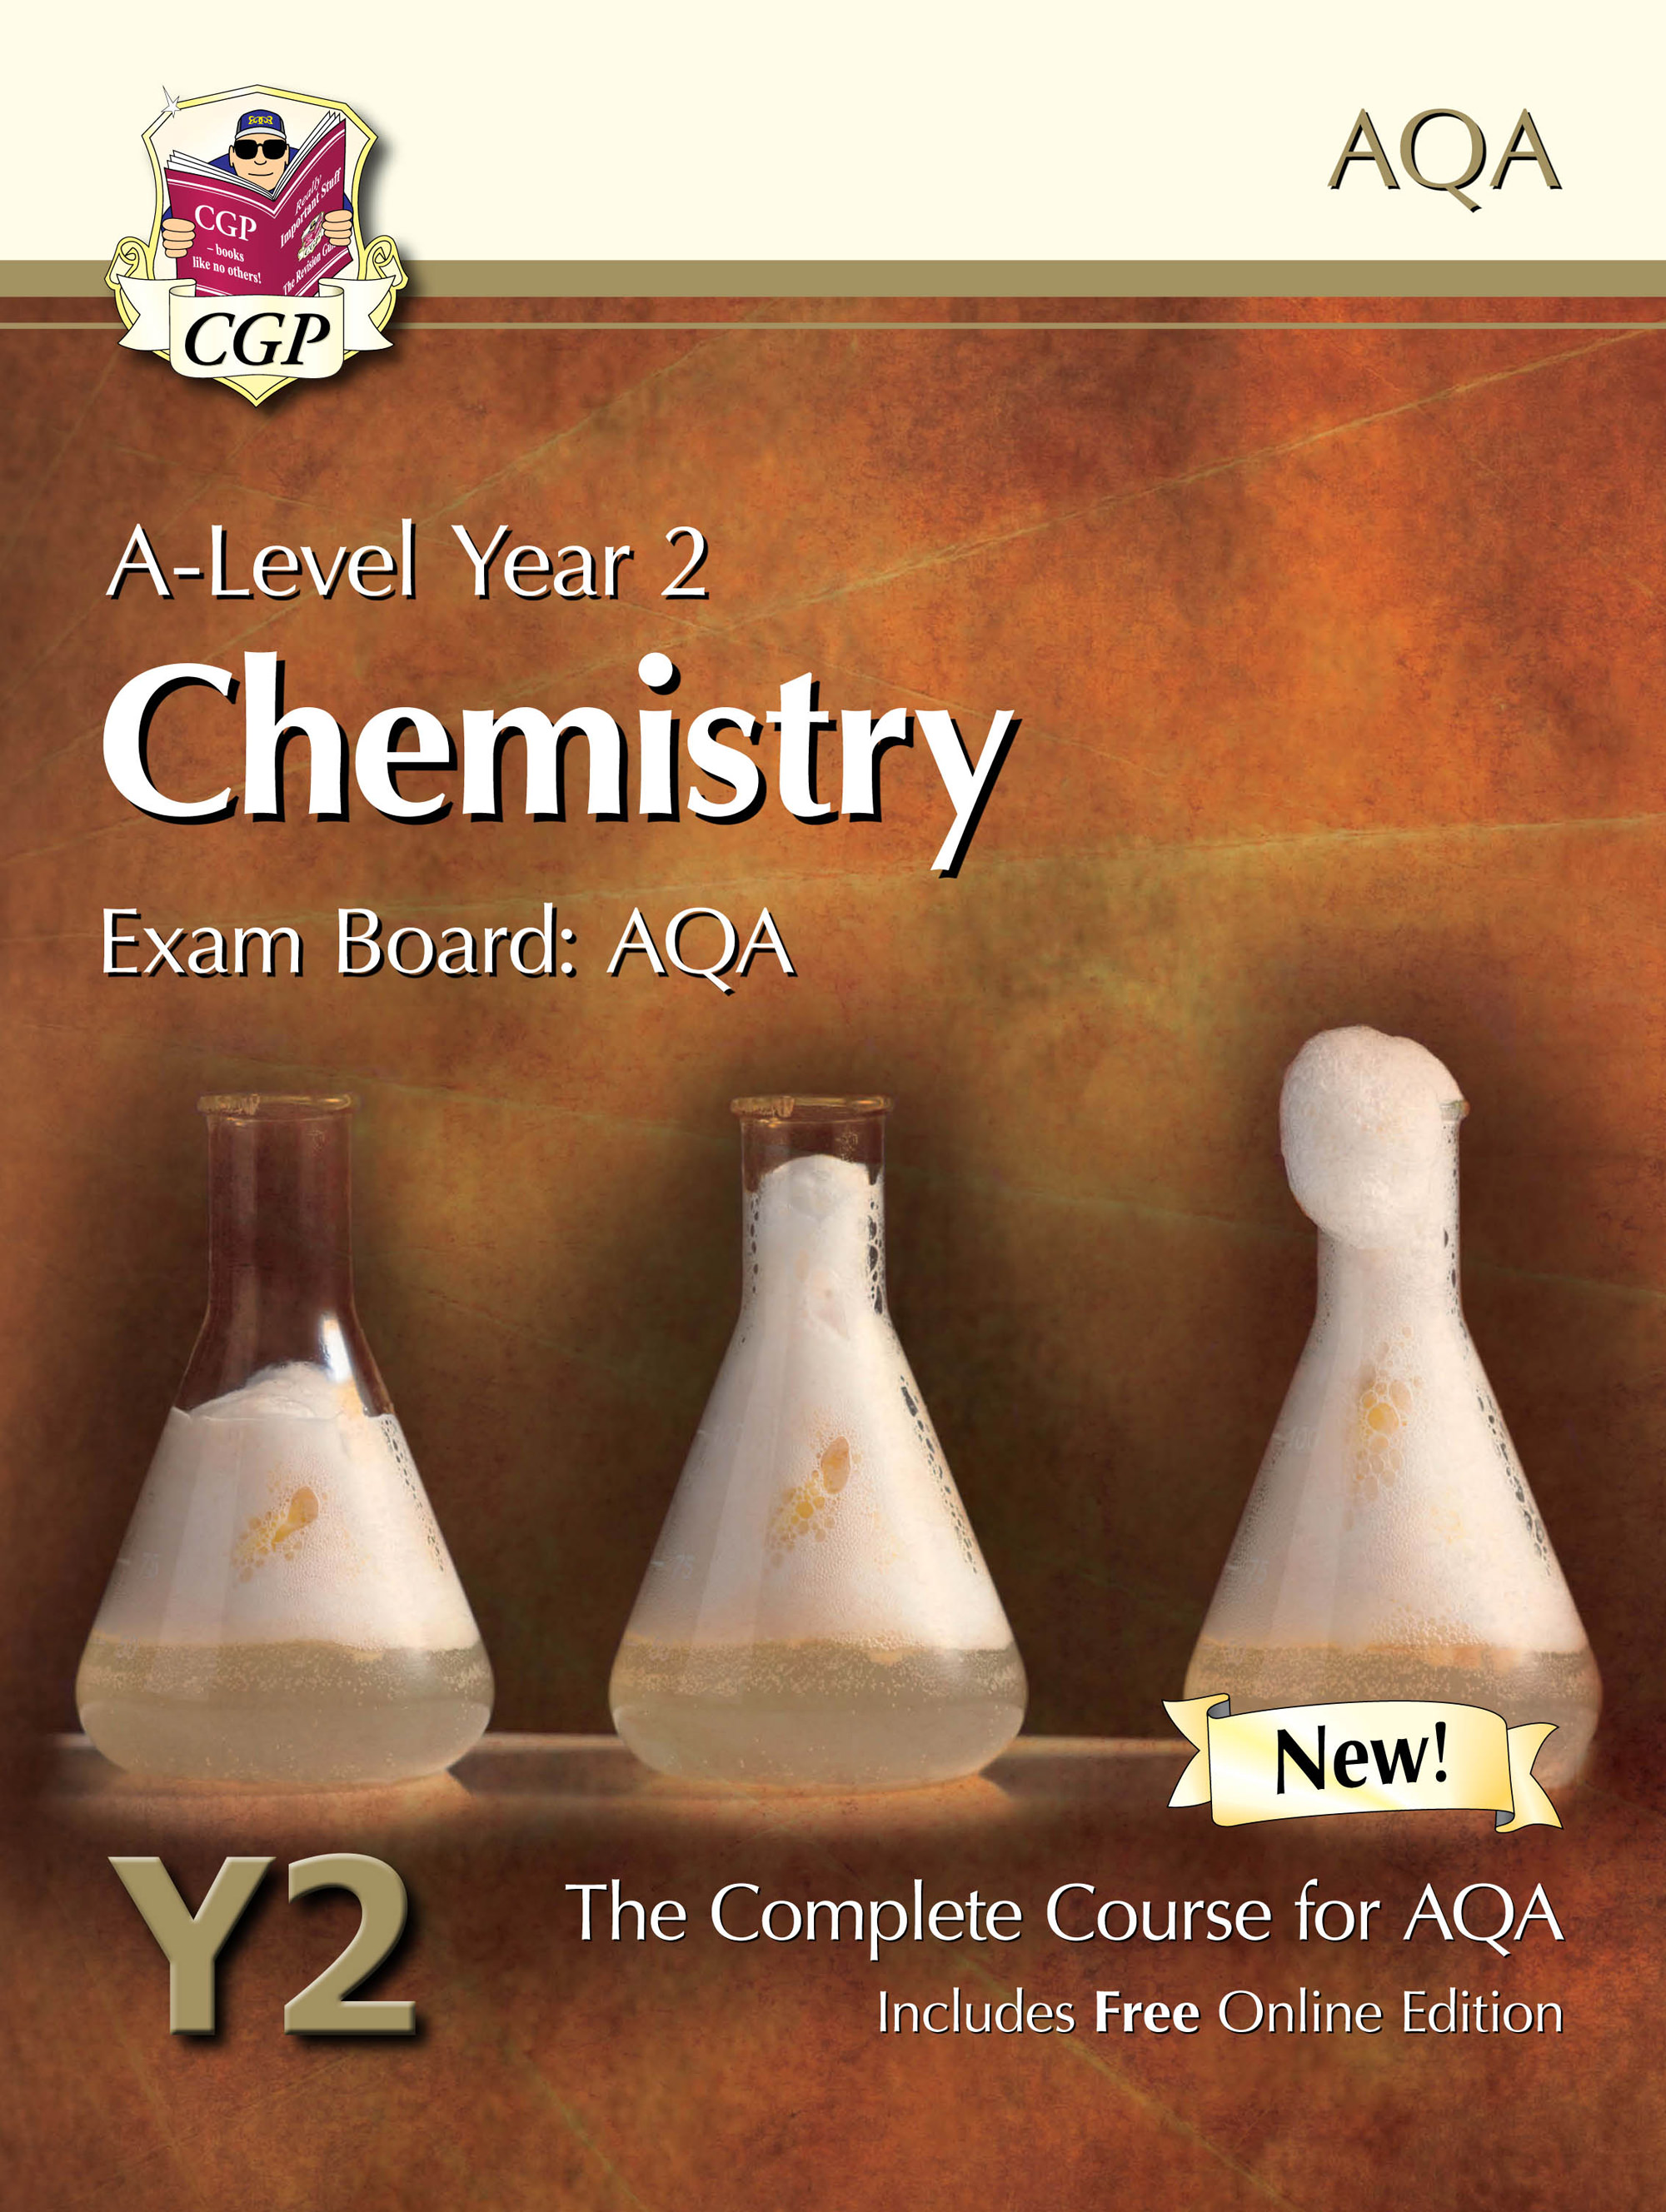 CATB62DK - A-Level Chemistry for AQA: Year 2 Student Book